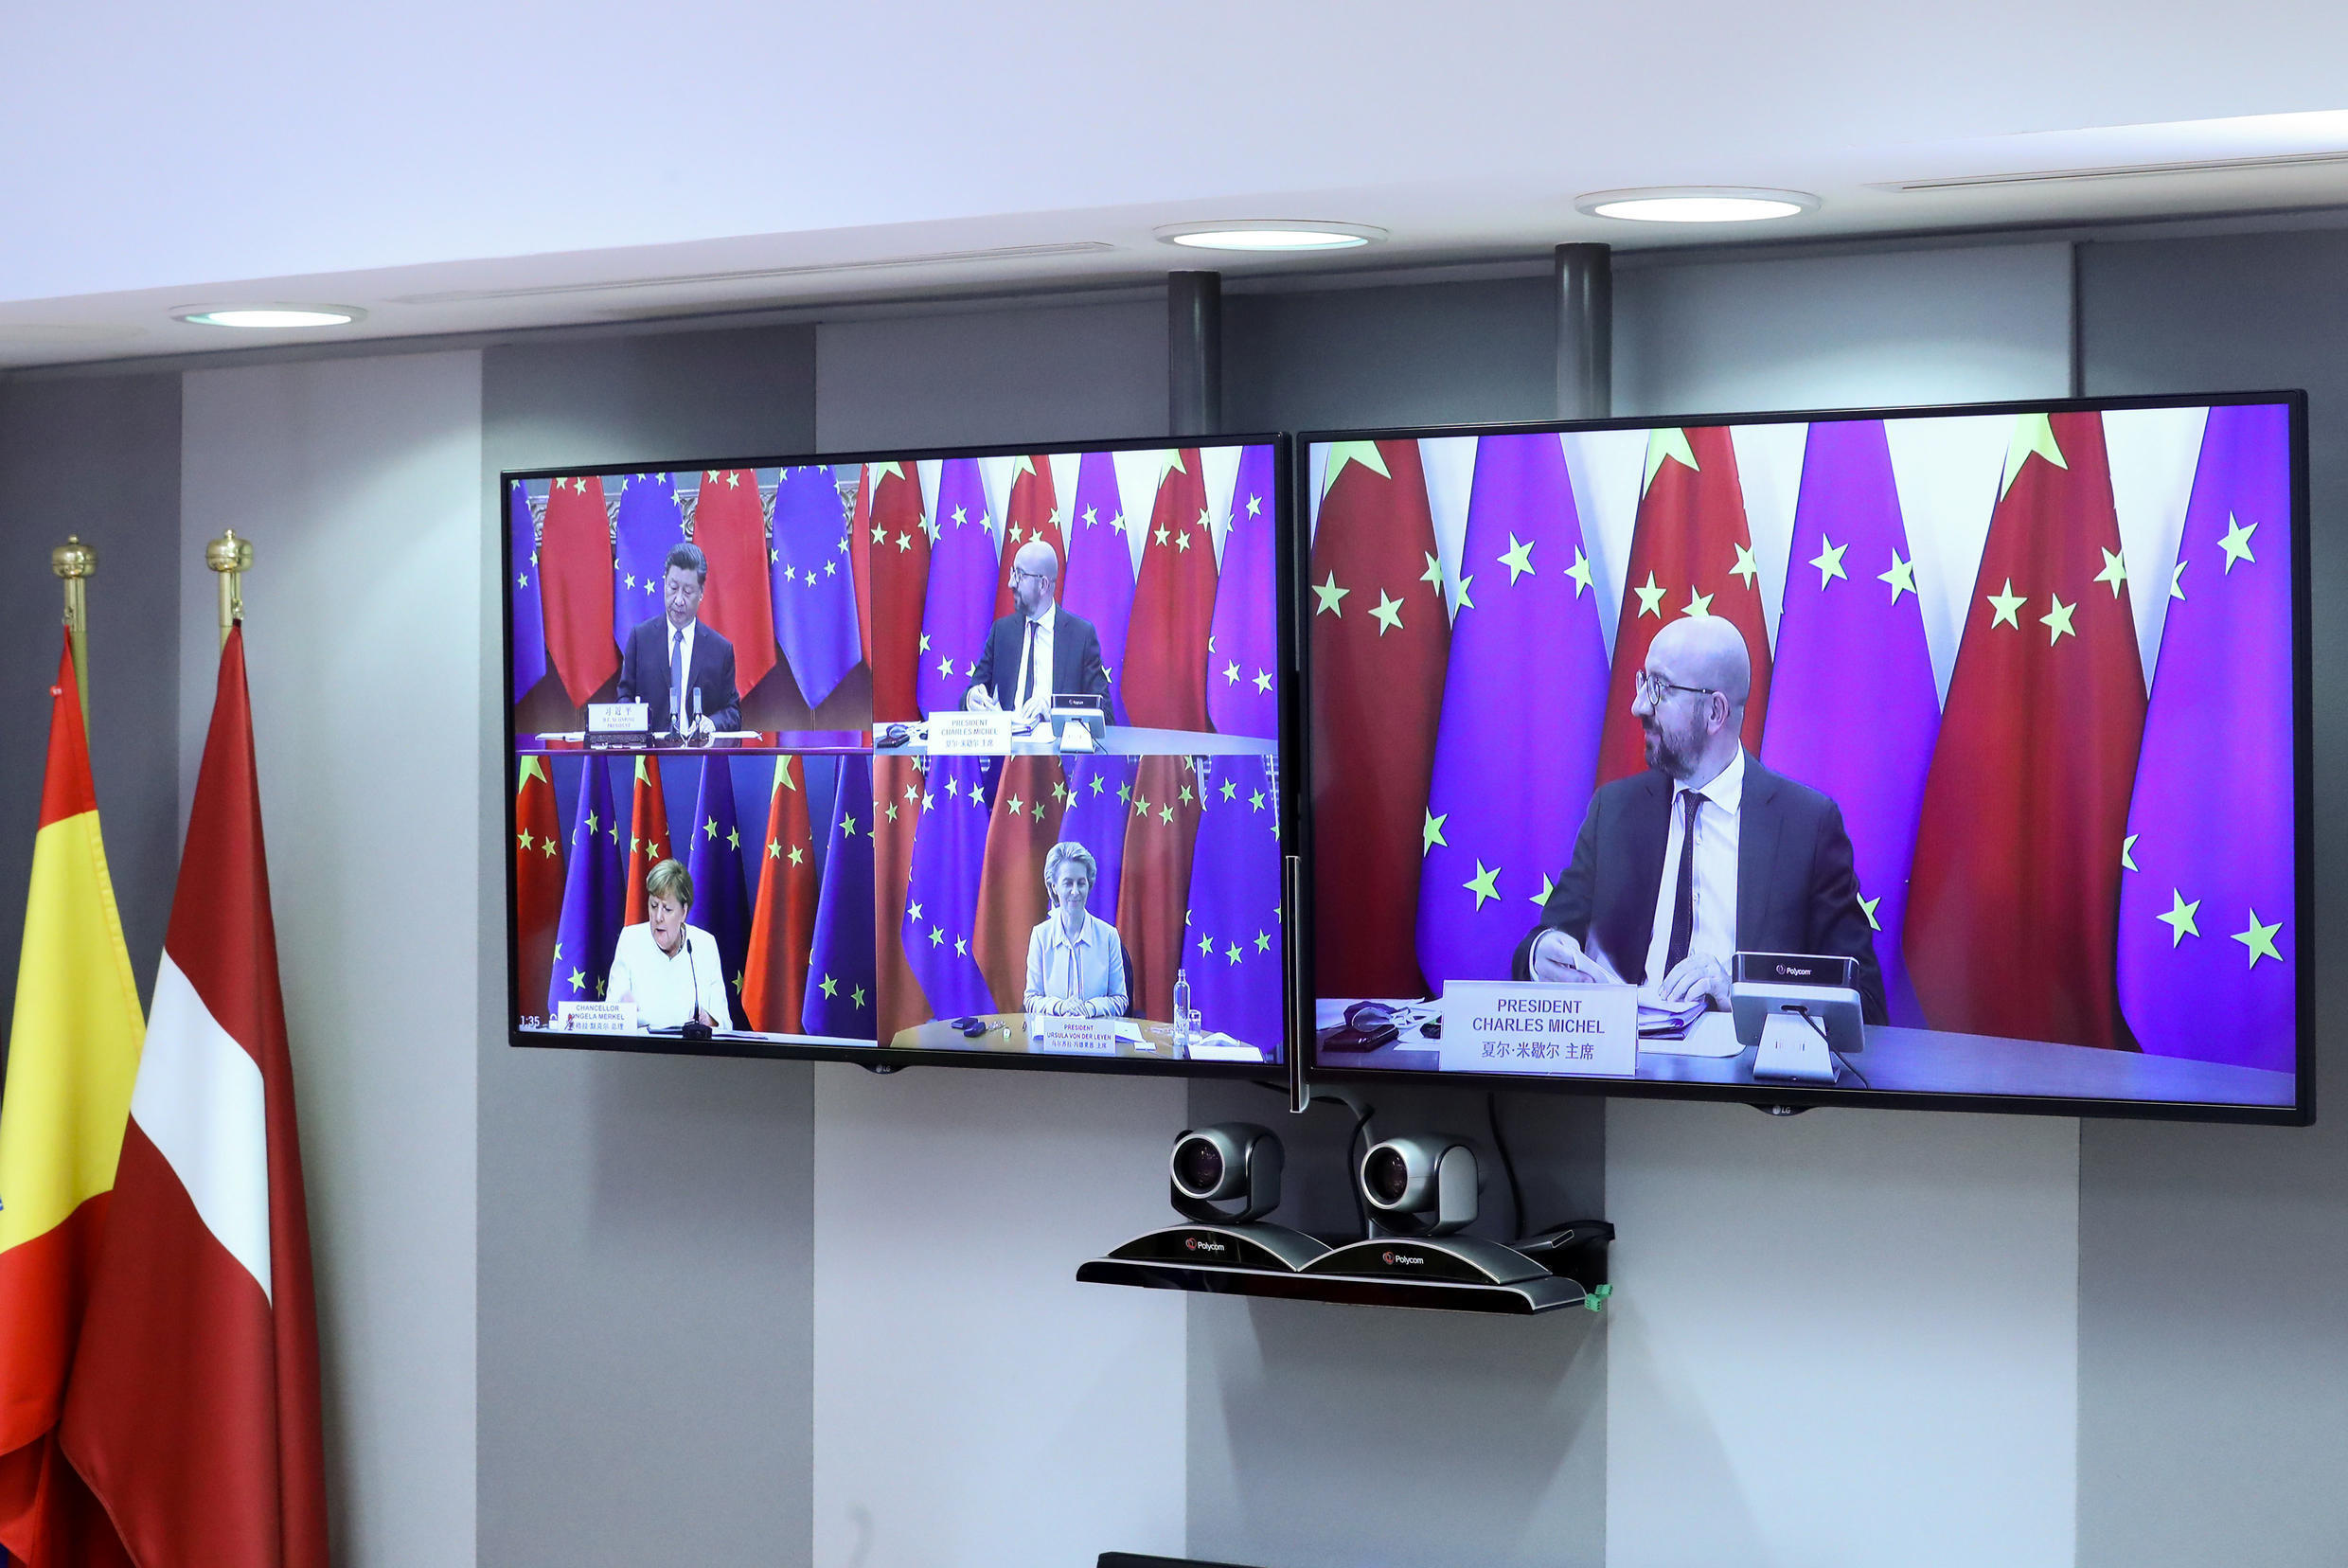 European Council President Charles Michel, High Representative of the European Union for Foreign Affairs and Security Policy Josep Borrell (not pictured) and connected via video European Commission President Ursula von der Leyen and German Chancellor Angela Merkel take part in a virtual summit with China's President Xi Jinping, in Brussels, Belgium September 14, 2020.